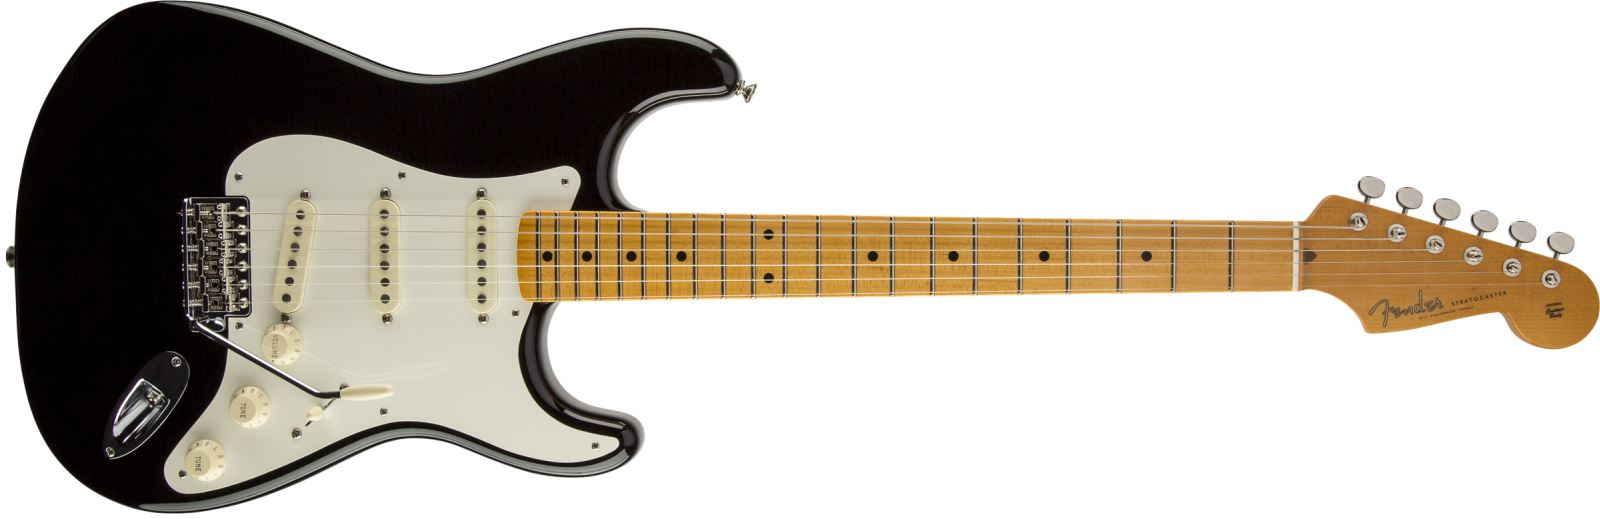 Fender Eric Johnson Stratocaster BK